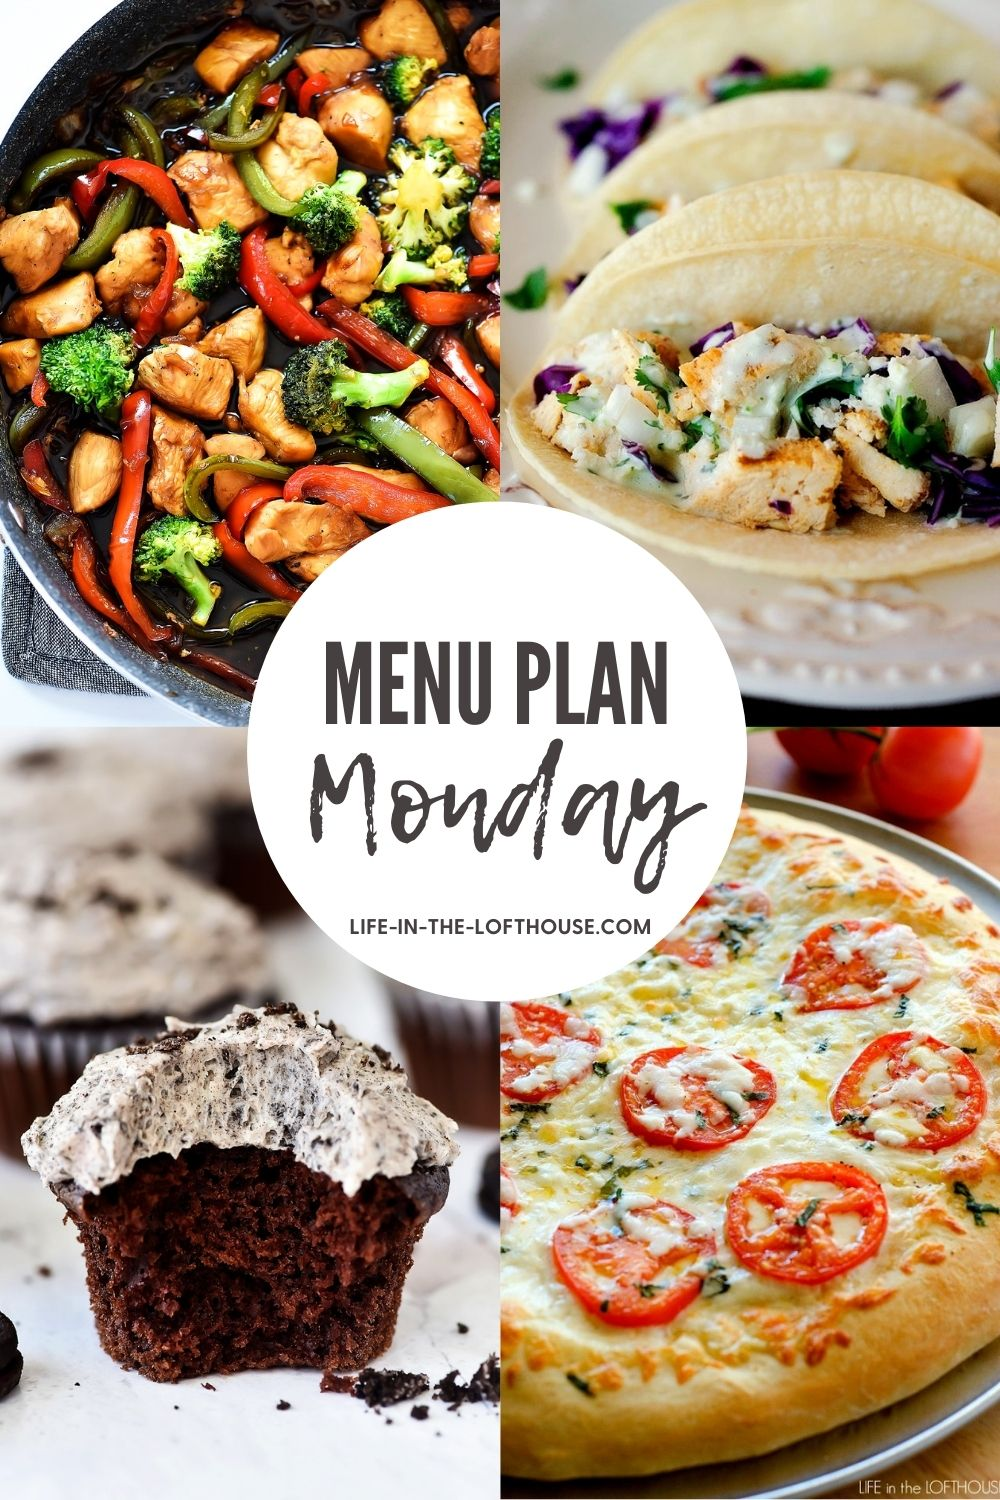 Menu Plan Monday is a list of family-friendly meals that are great for busy weeknights.